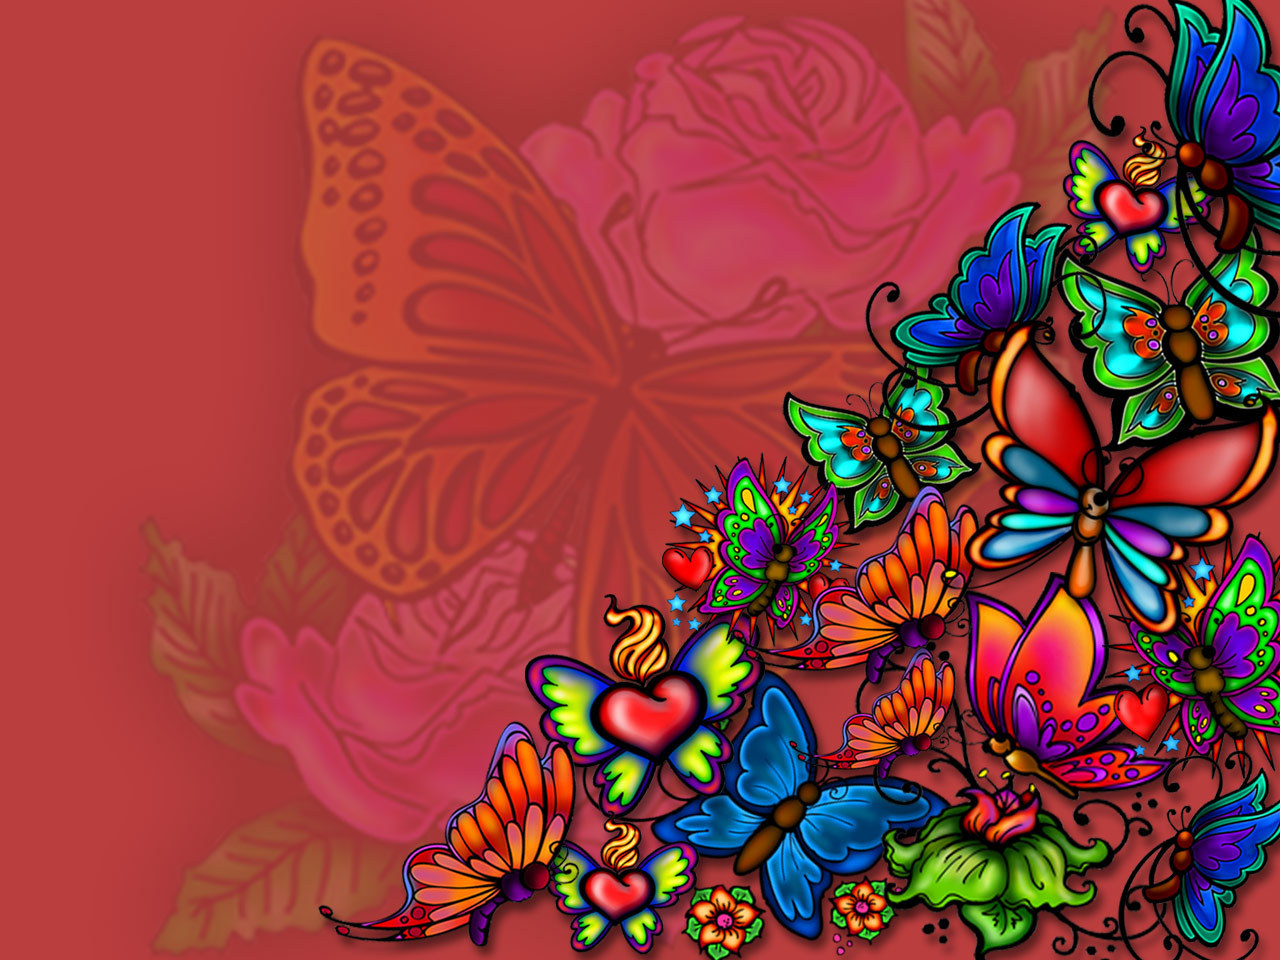 Butterflies images butterflies tattoo HD wallpaper and background 1280x960